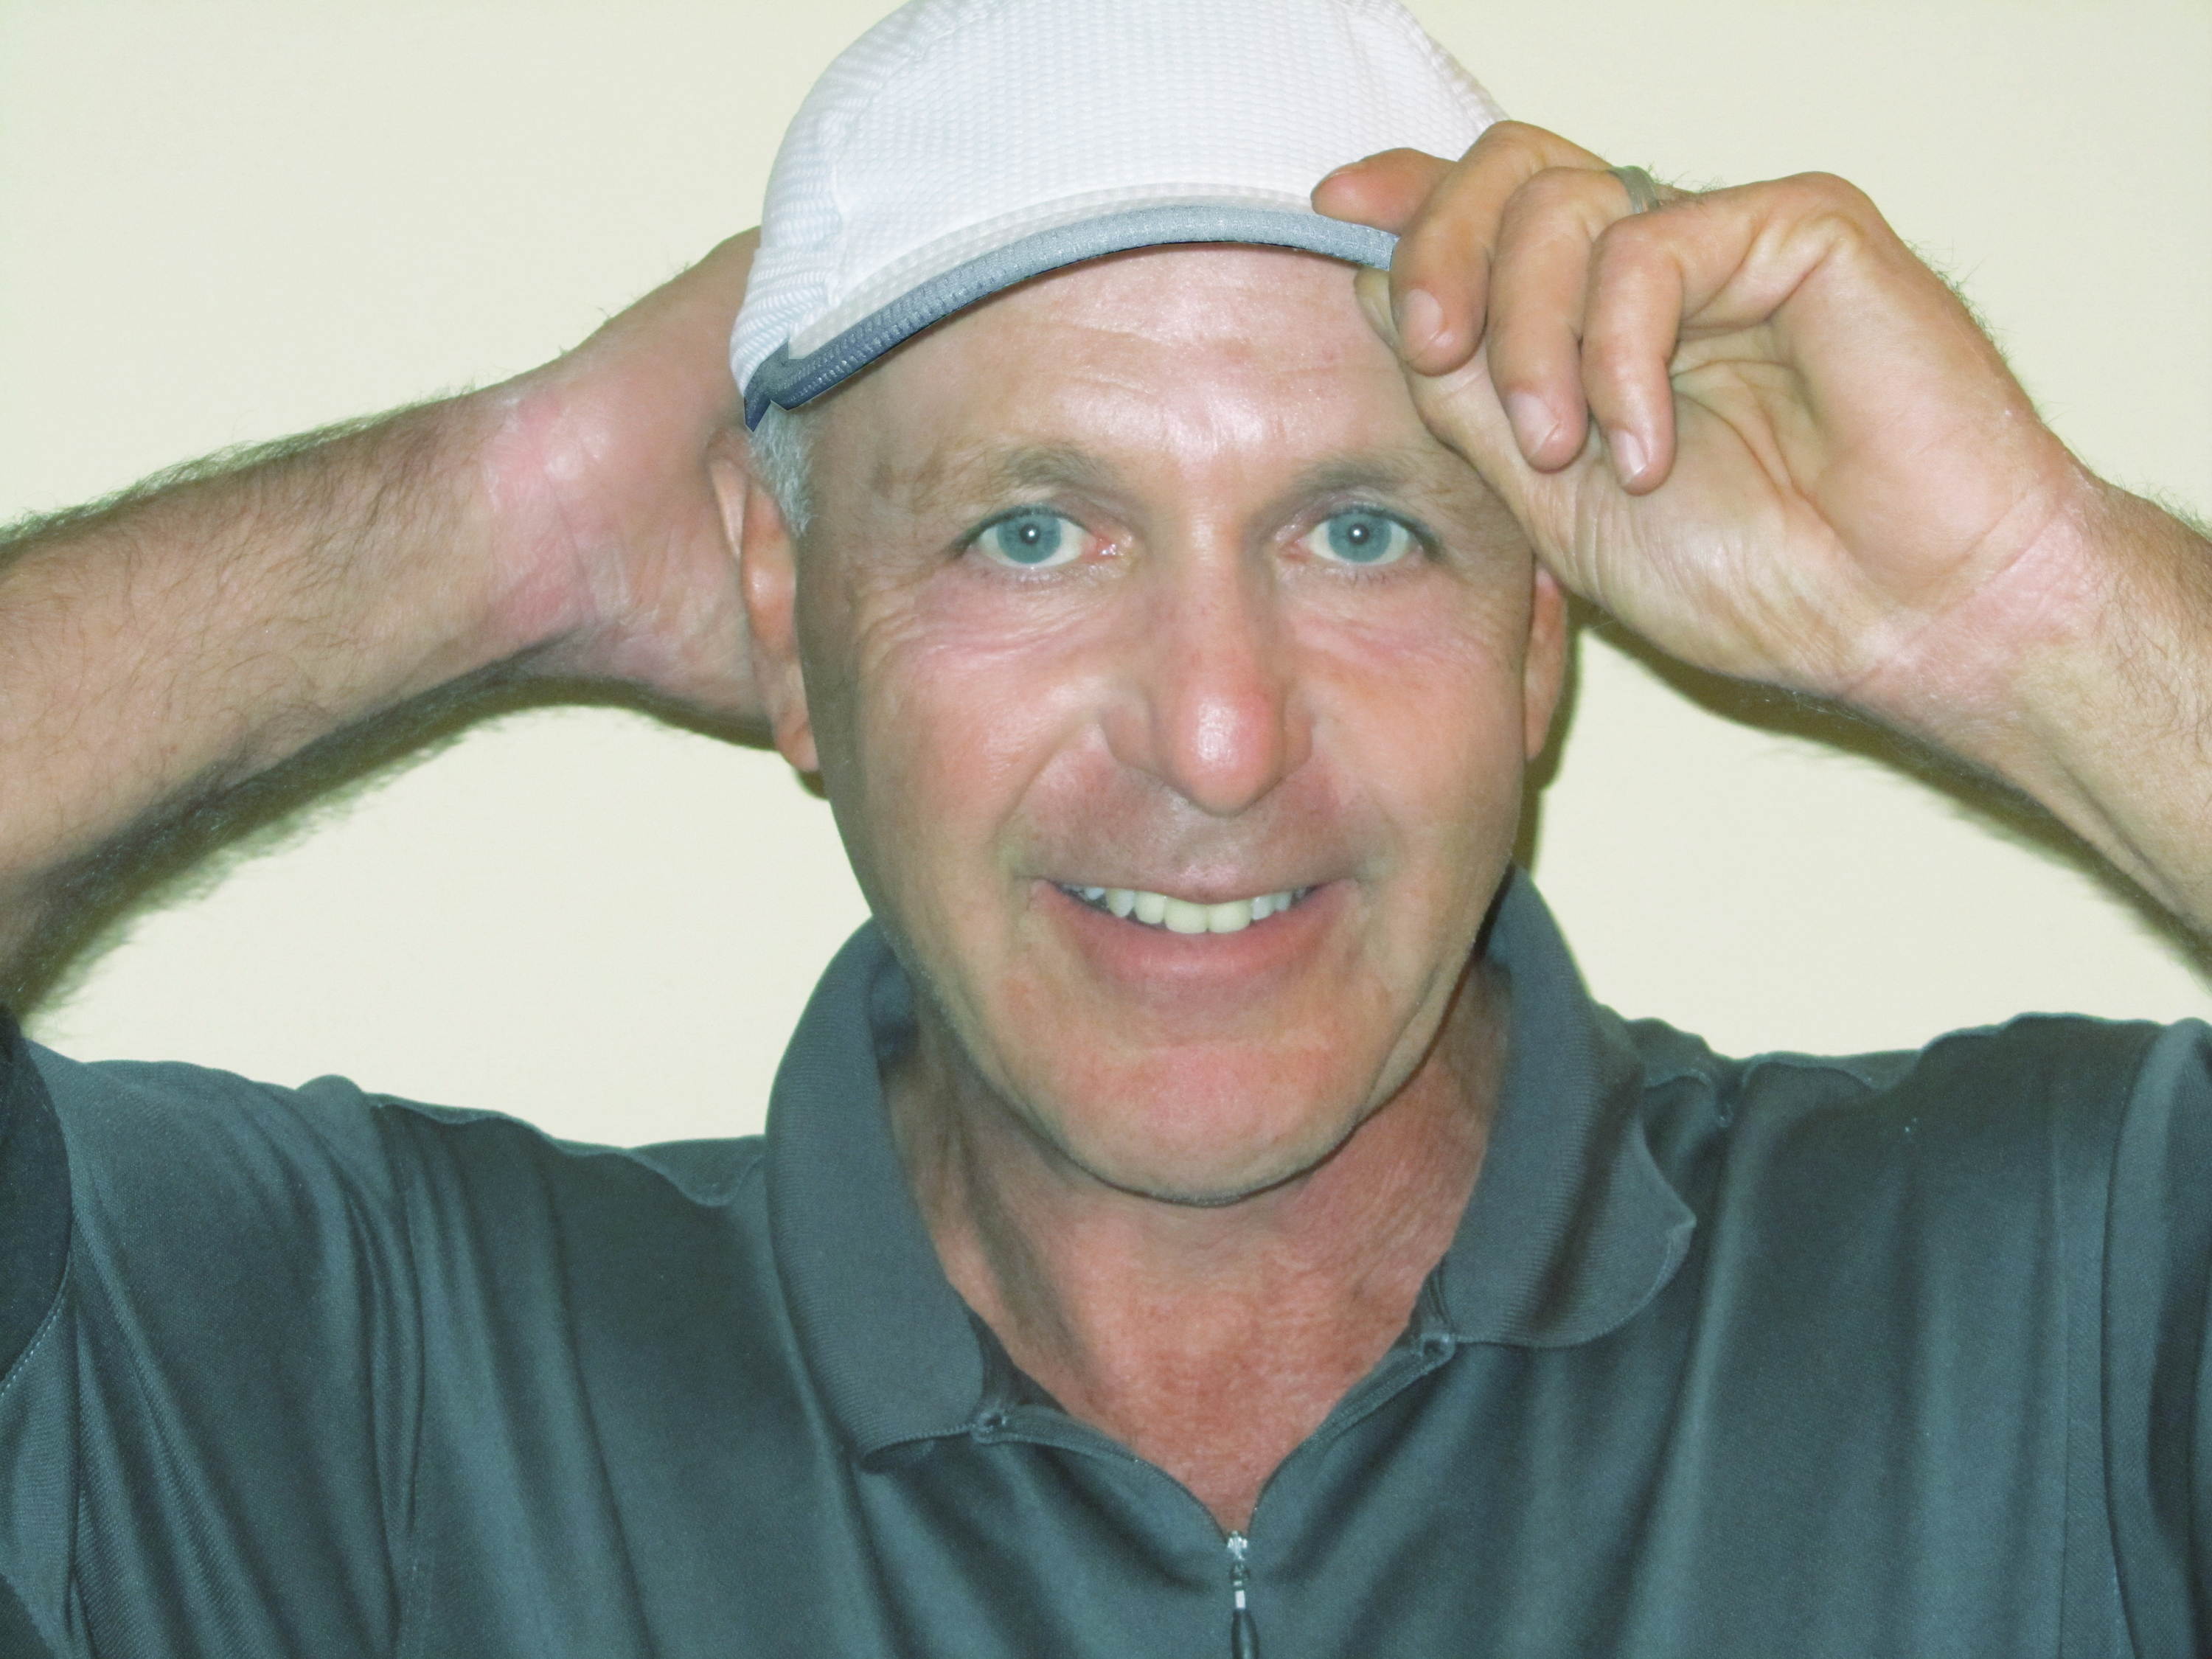 golf hat company giving away two vip tickets to senior pga championship